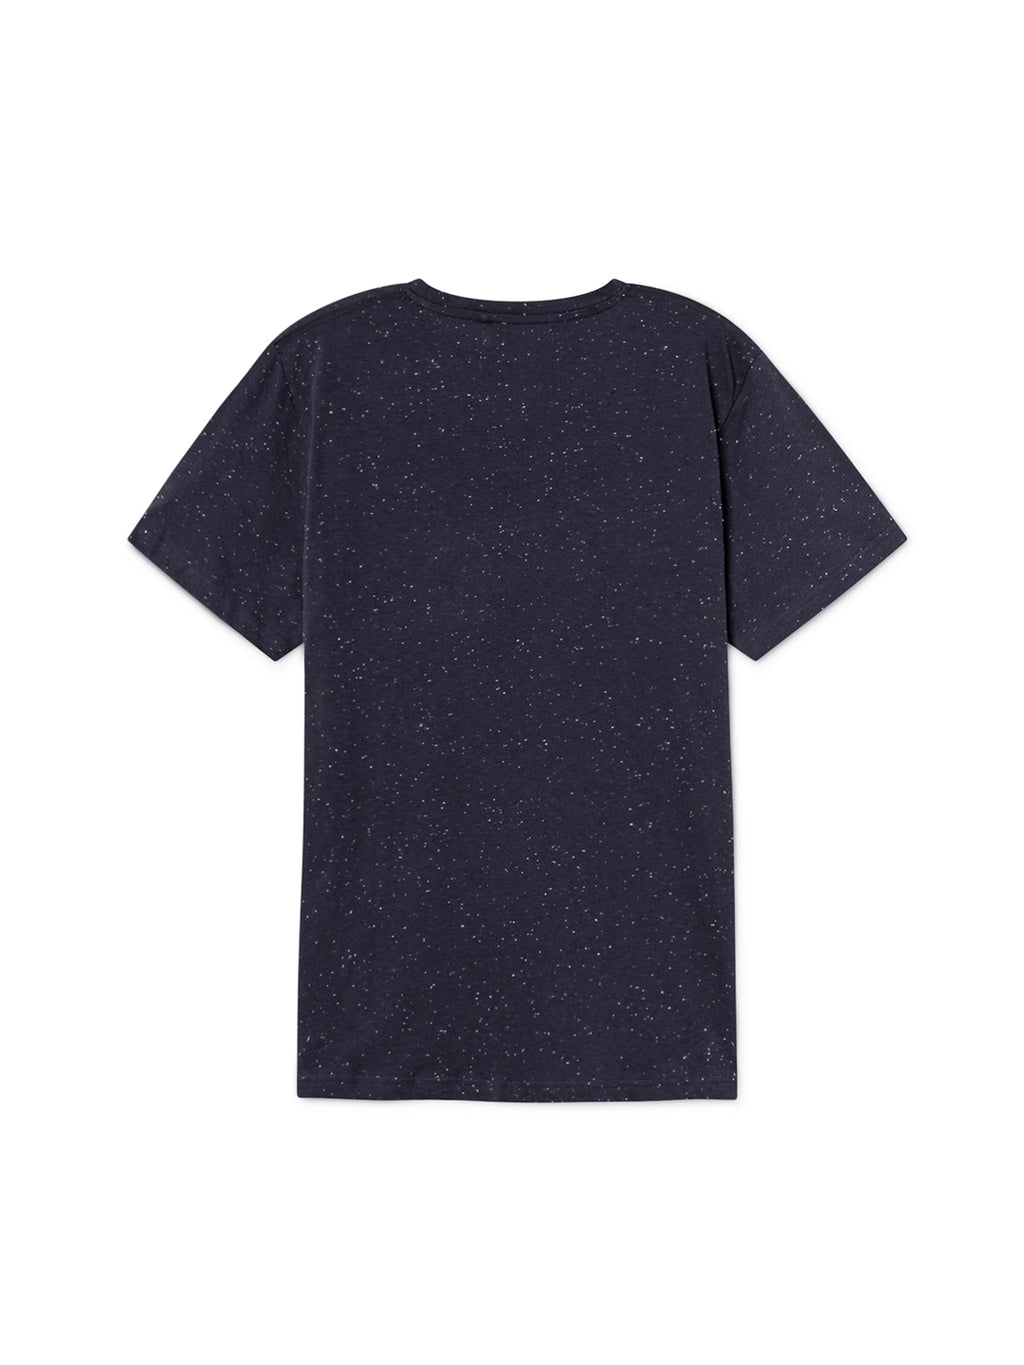 TWOTHIRDS Mens Tee: Sepanggar Man - Navy back